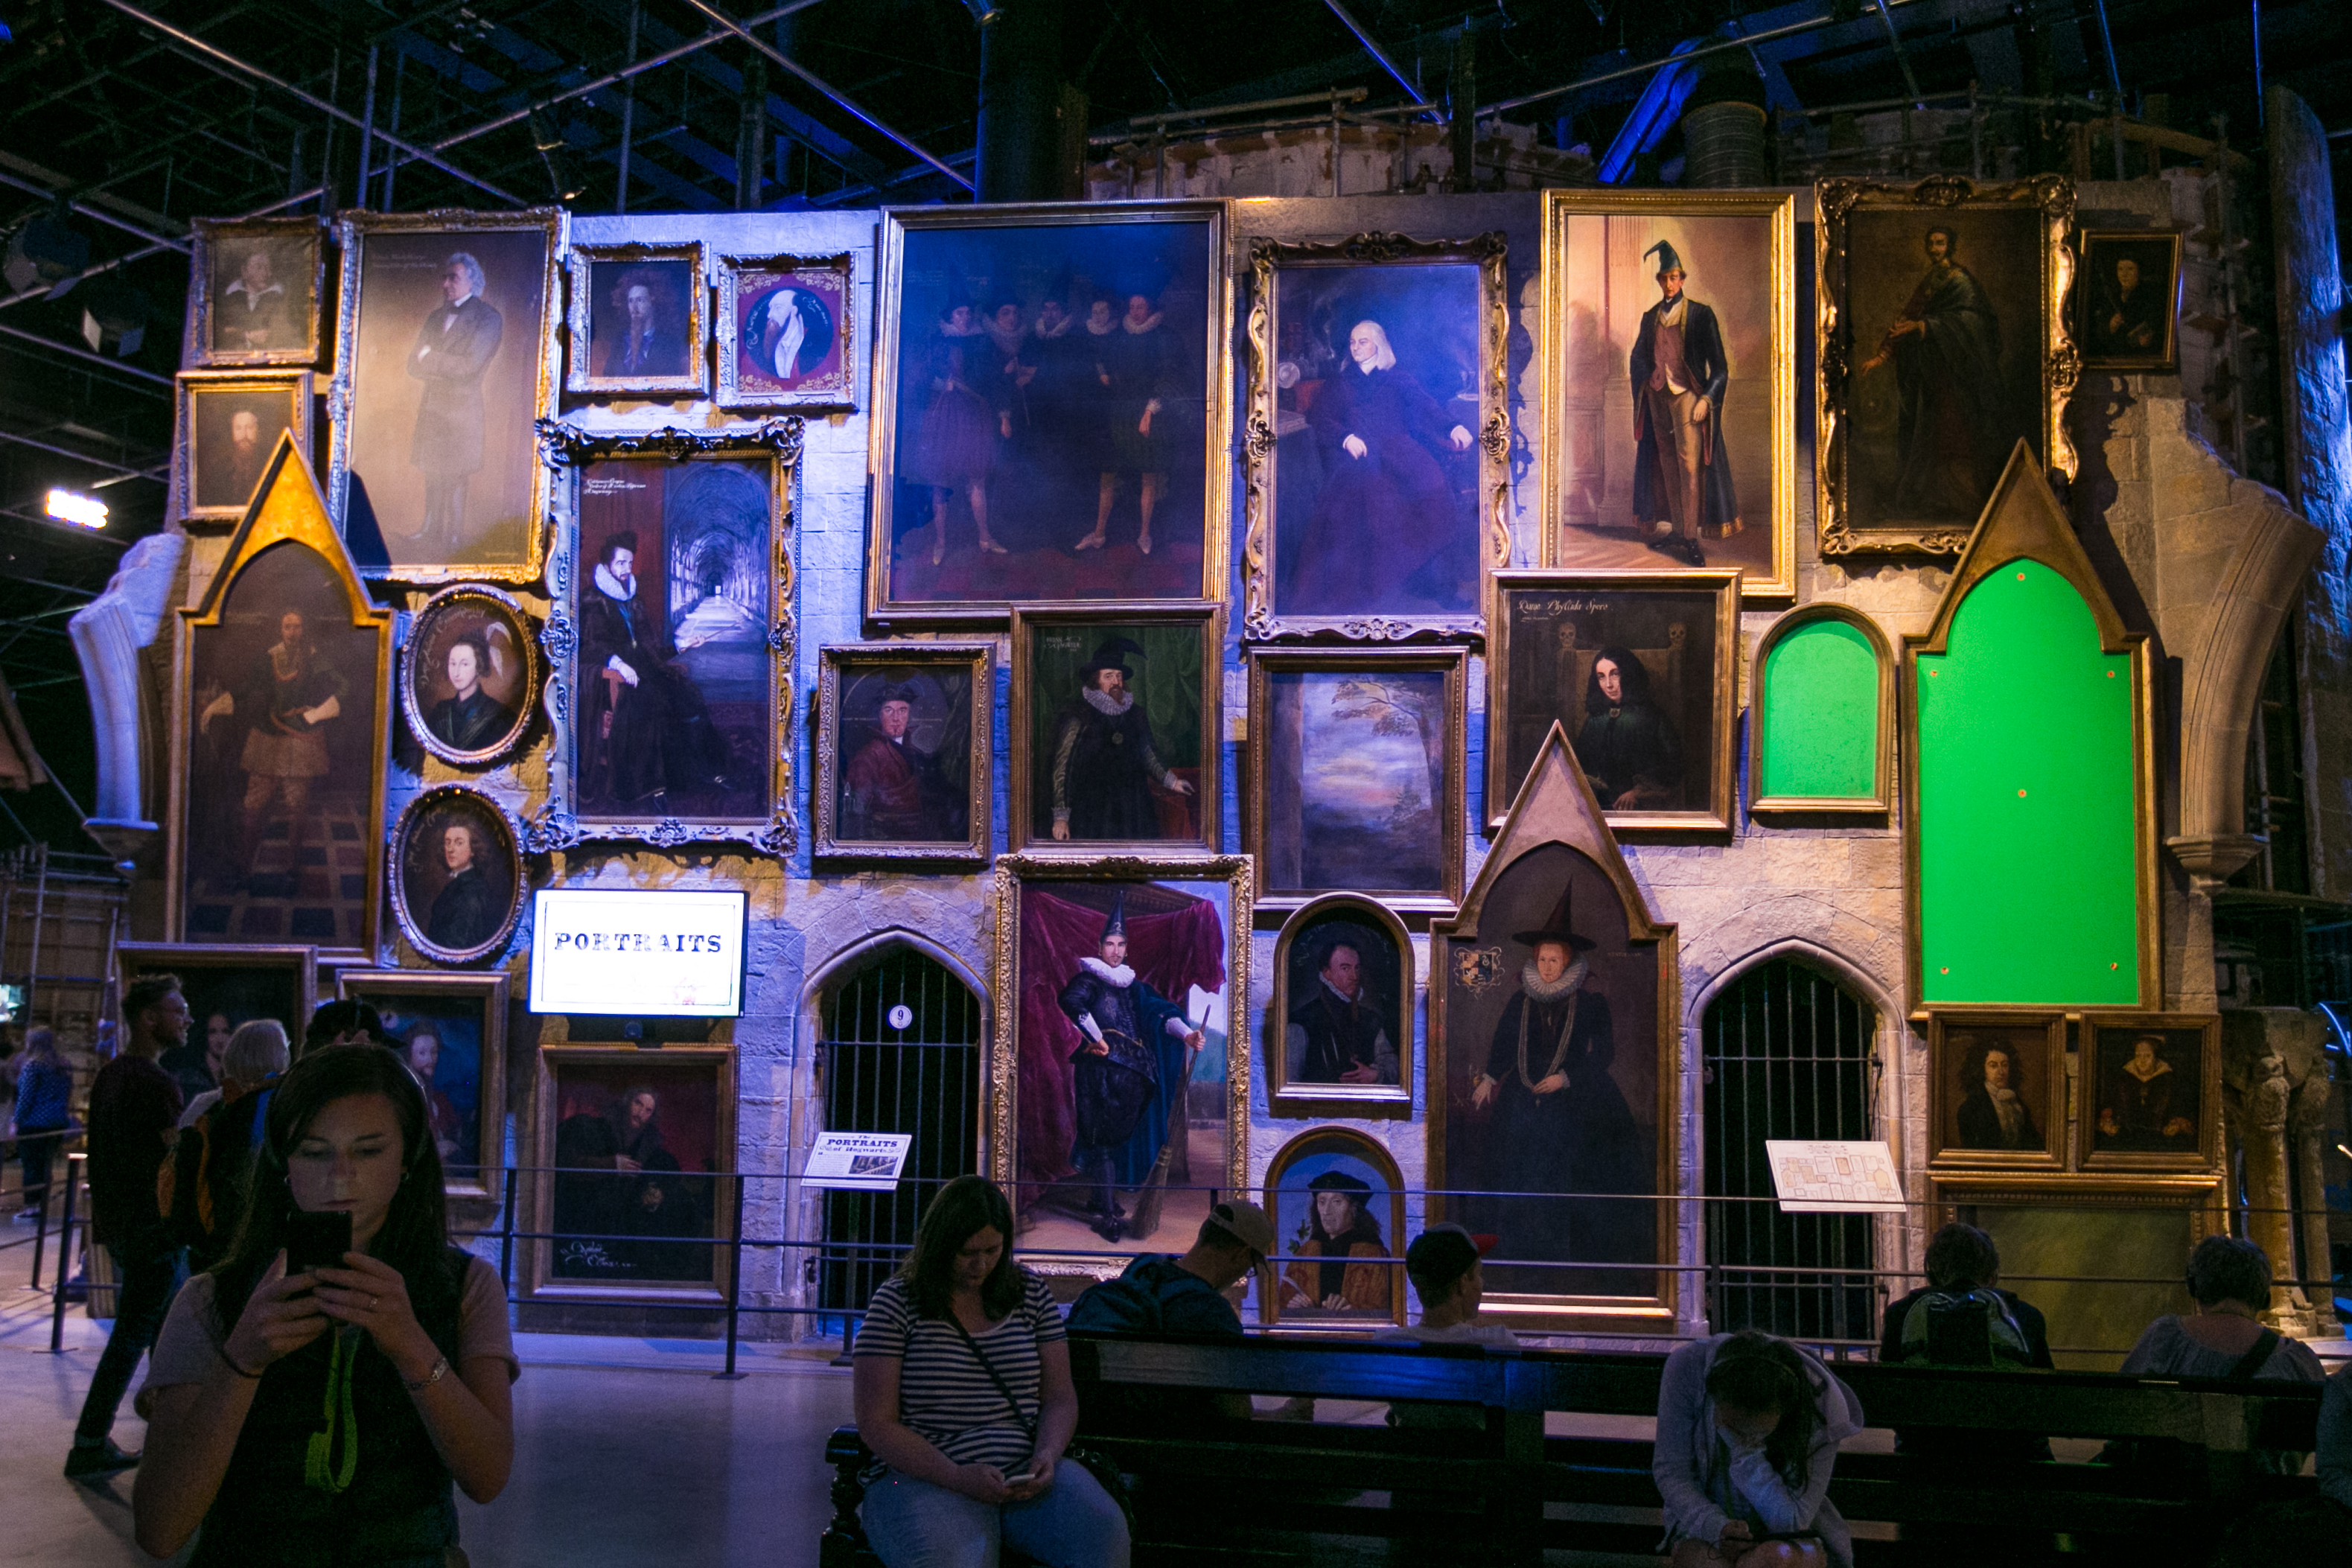 harry-potter-studio-tour-portraits-gallery